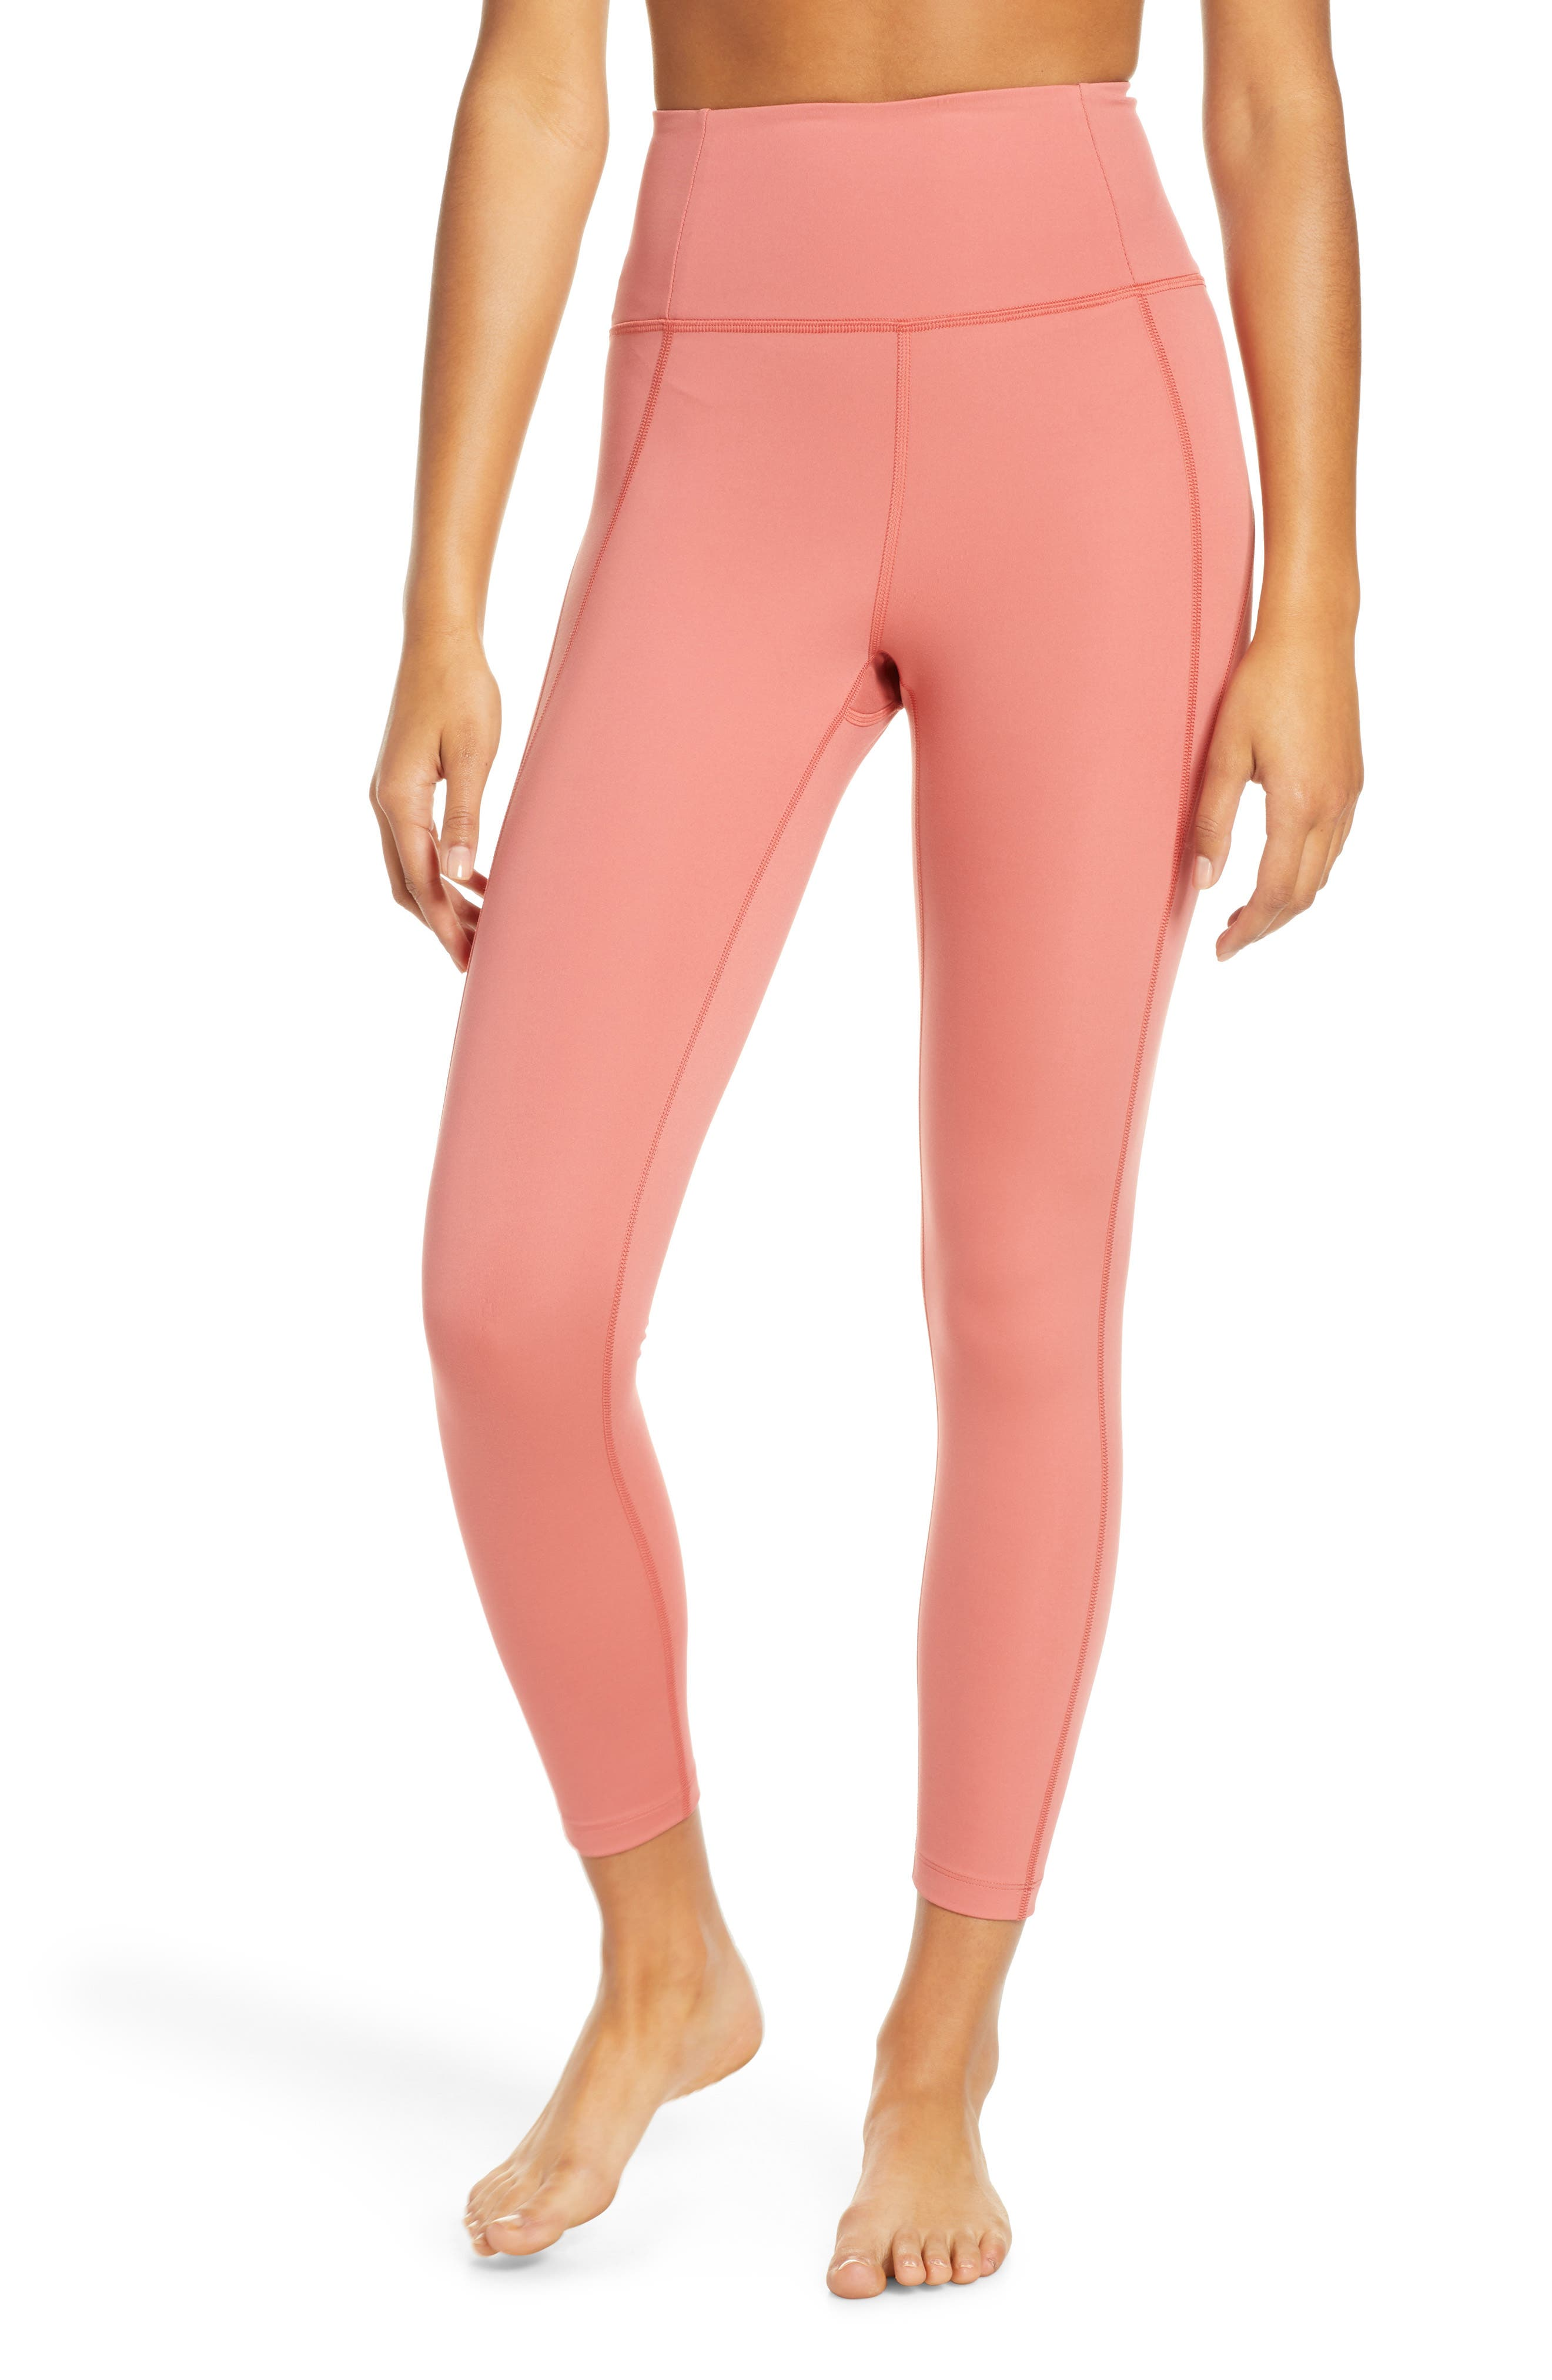 Girlfriend Collective High Waist 7/8 Leggings, Pink